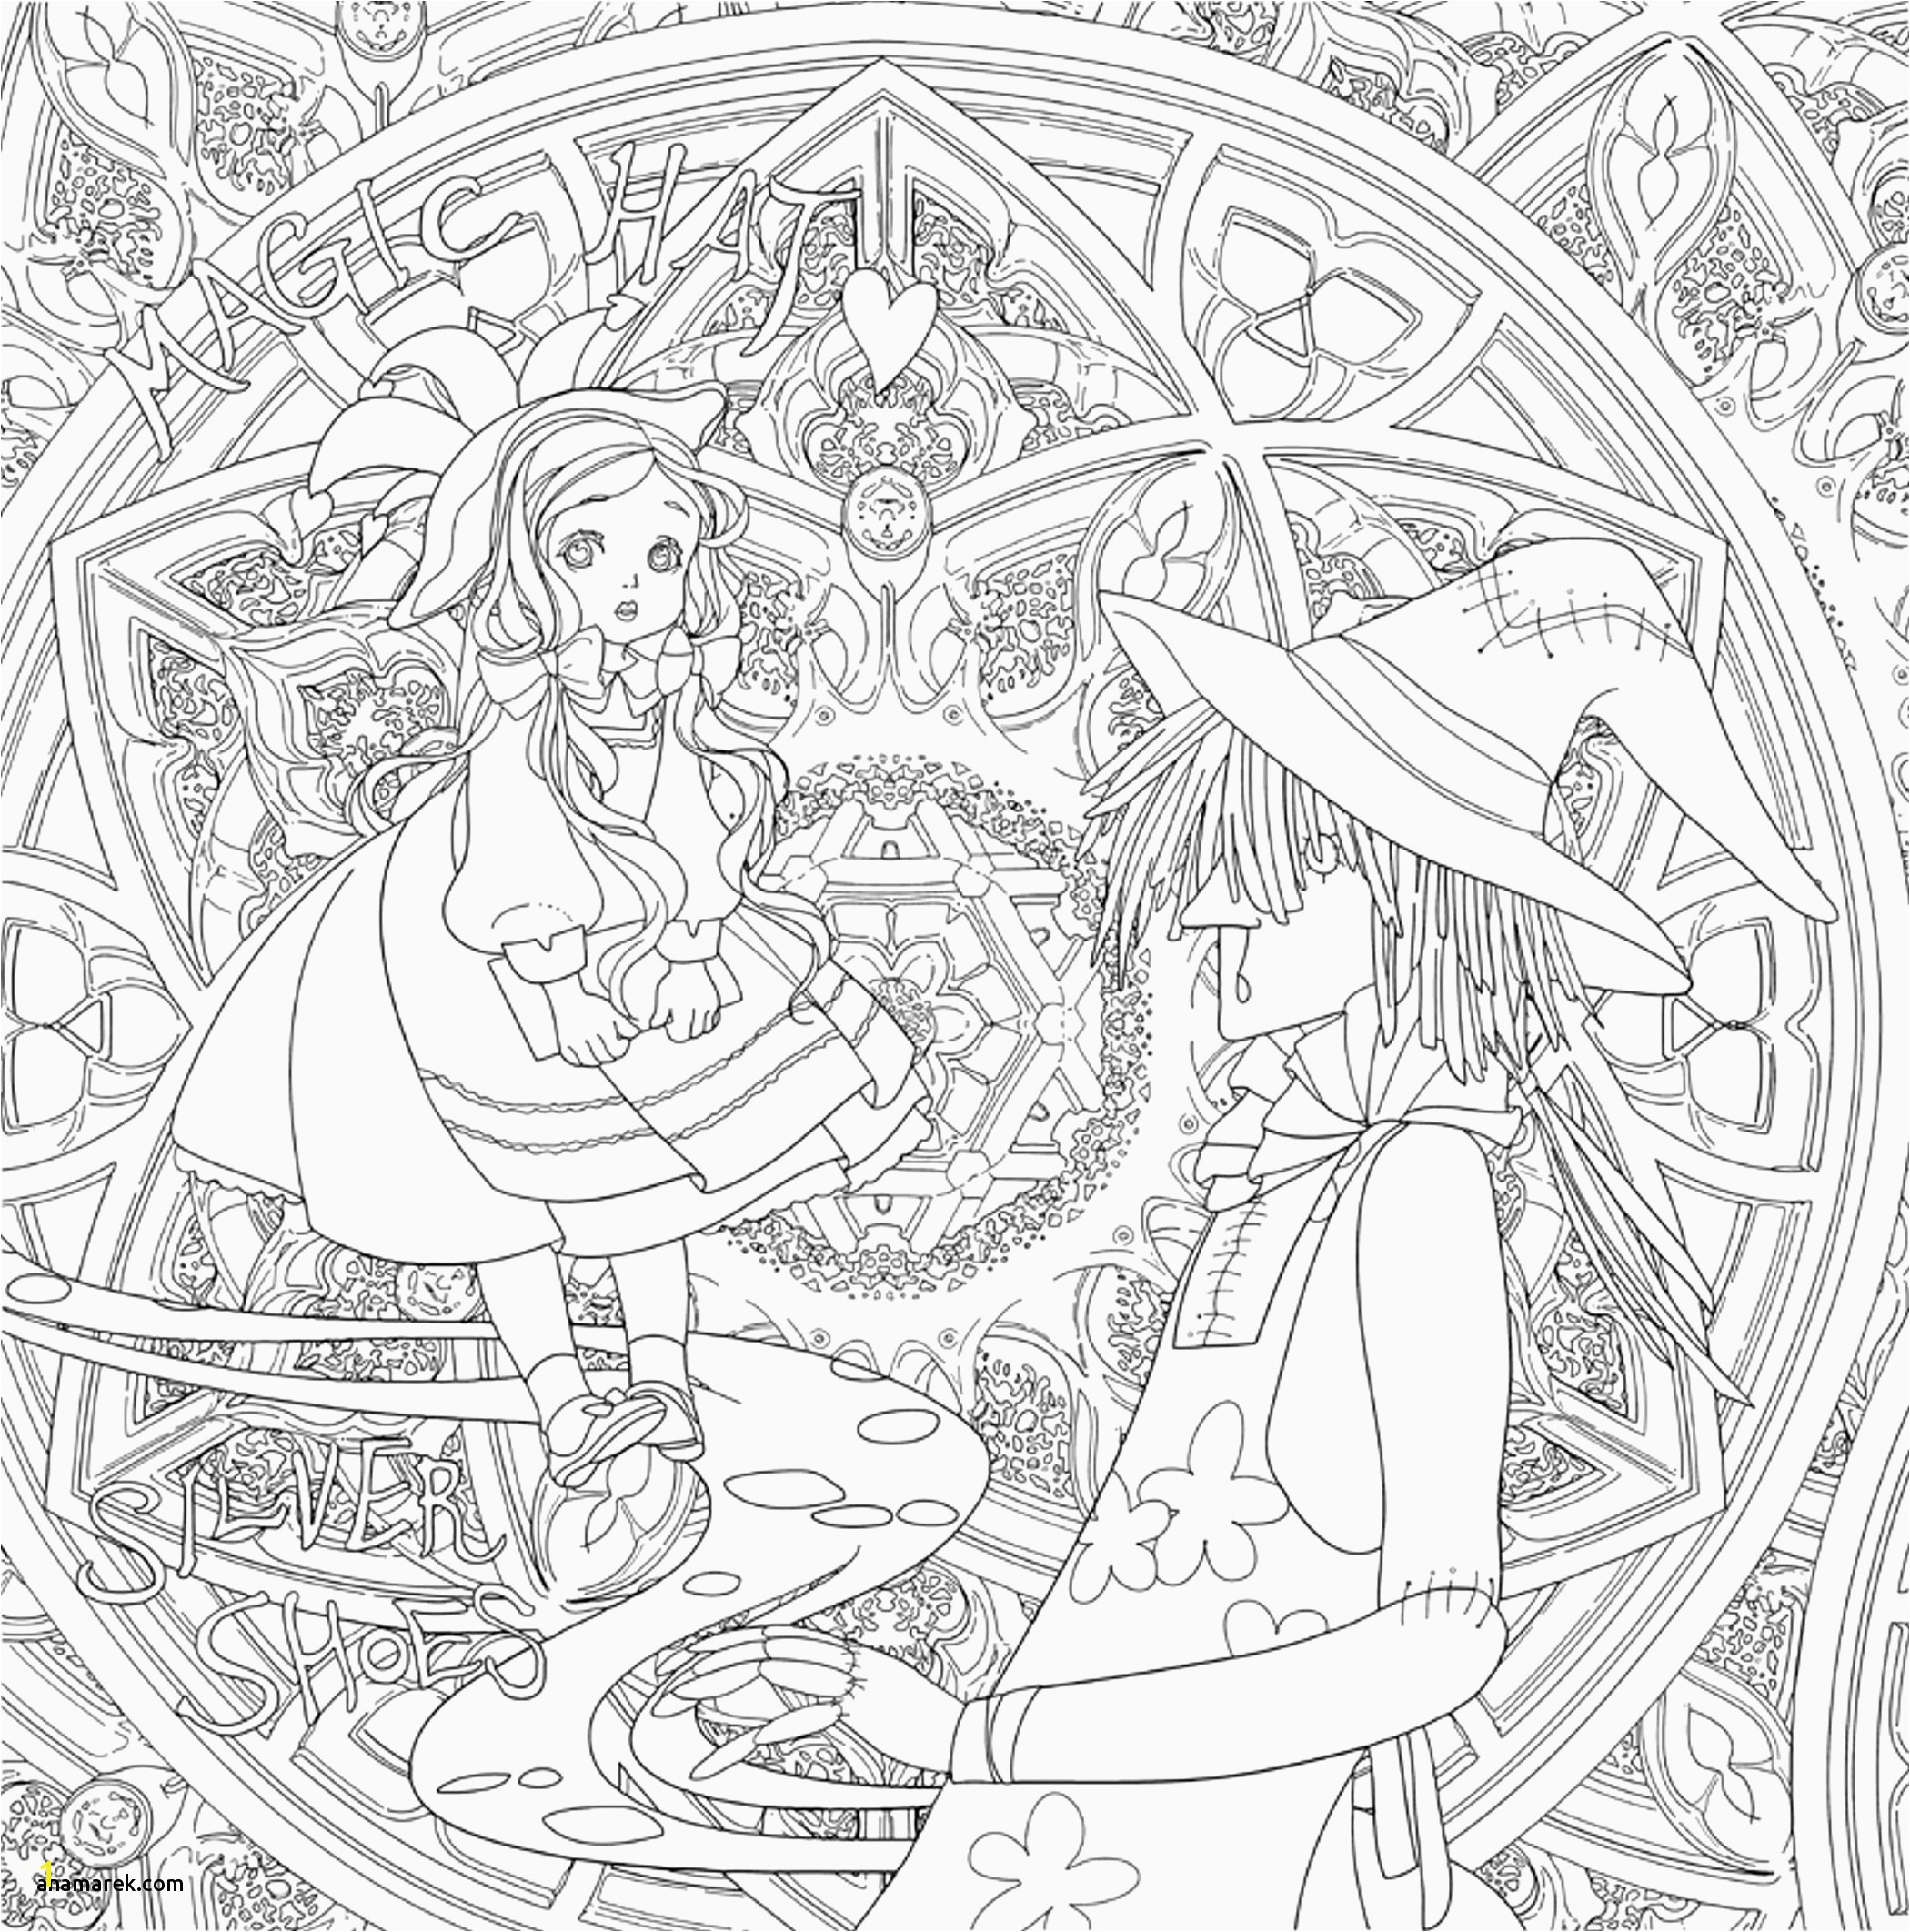 Coloring Book Luxury Pics To Color Fresh R Rated Coloring Pages Luxury Printable Cds 0d Coloring melanie martinez cry baby